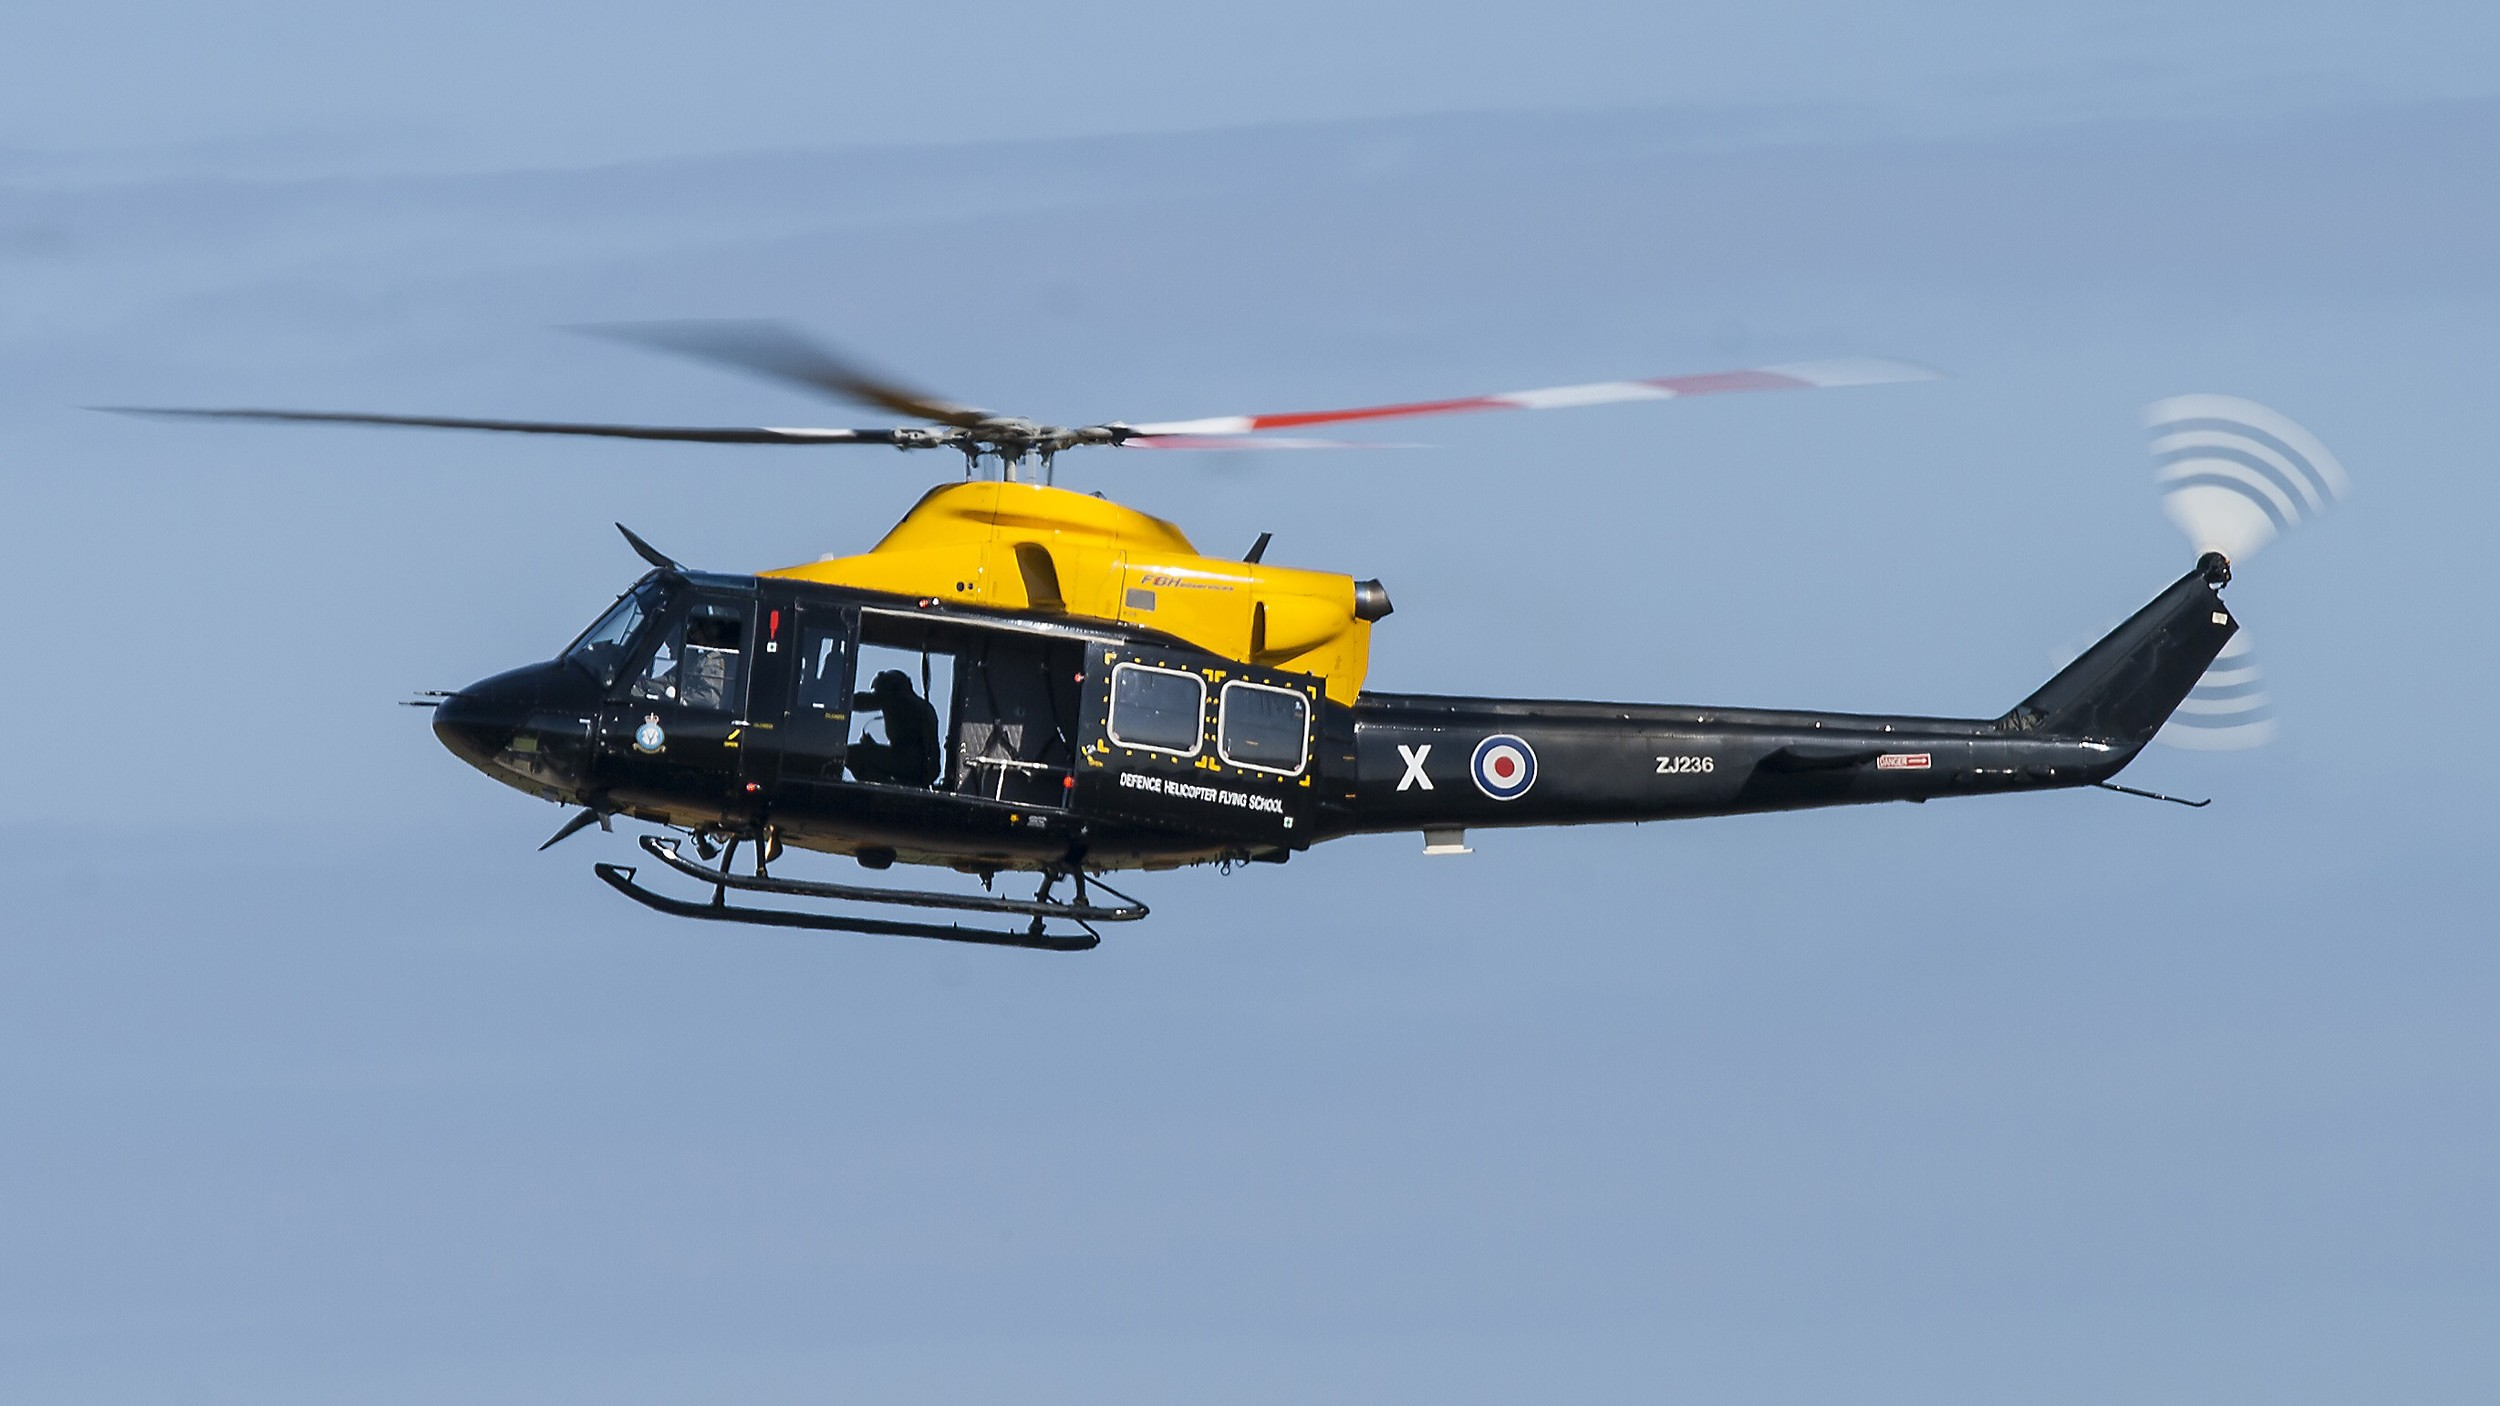 I've now slowed the shutter down to 1/125  and again if you look at the tail rotor you'll notice that there's more movement captured.